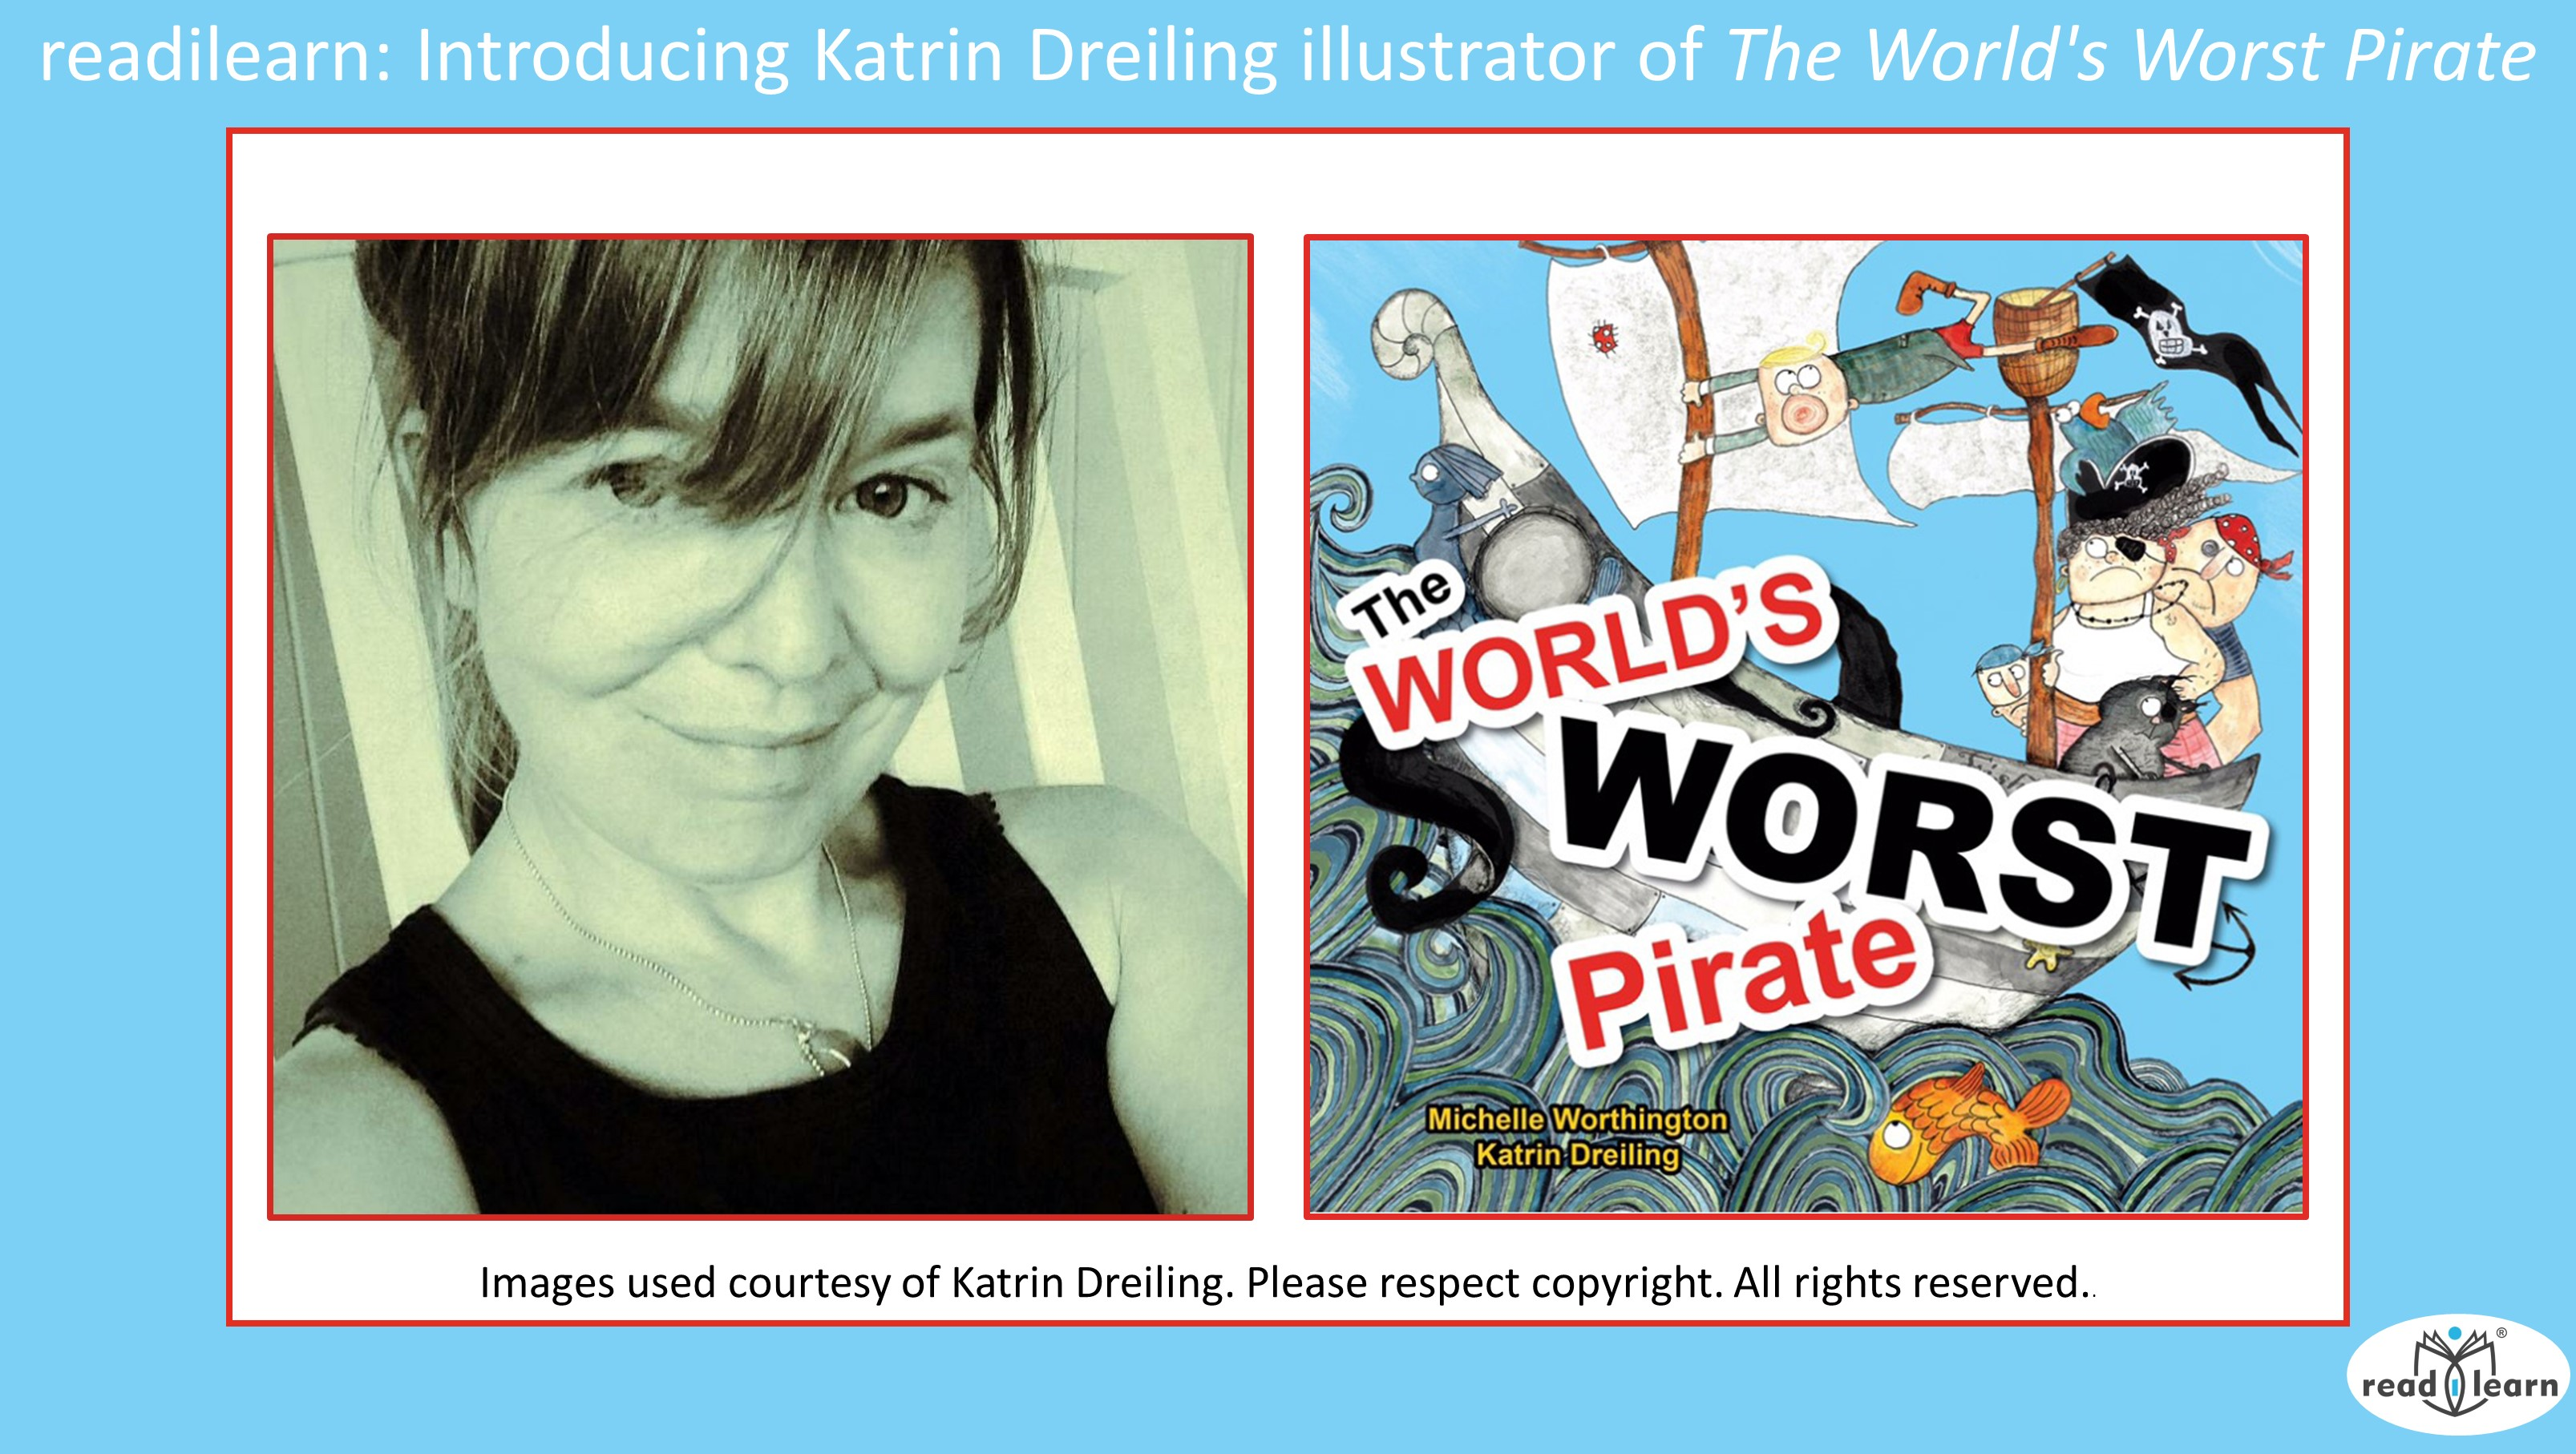 interview with Katrin Dreiling, illustrator of The World's Worst Pirate